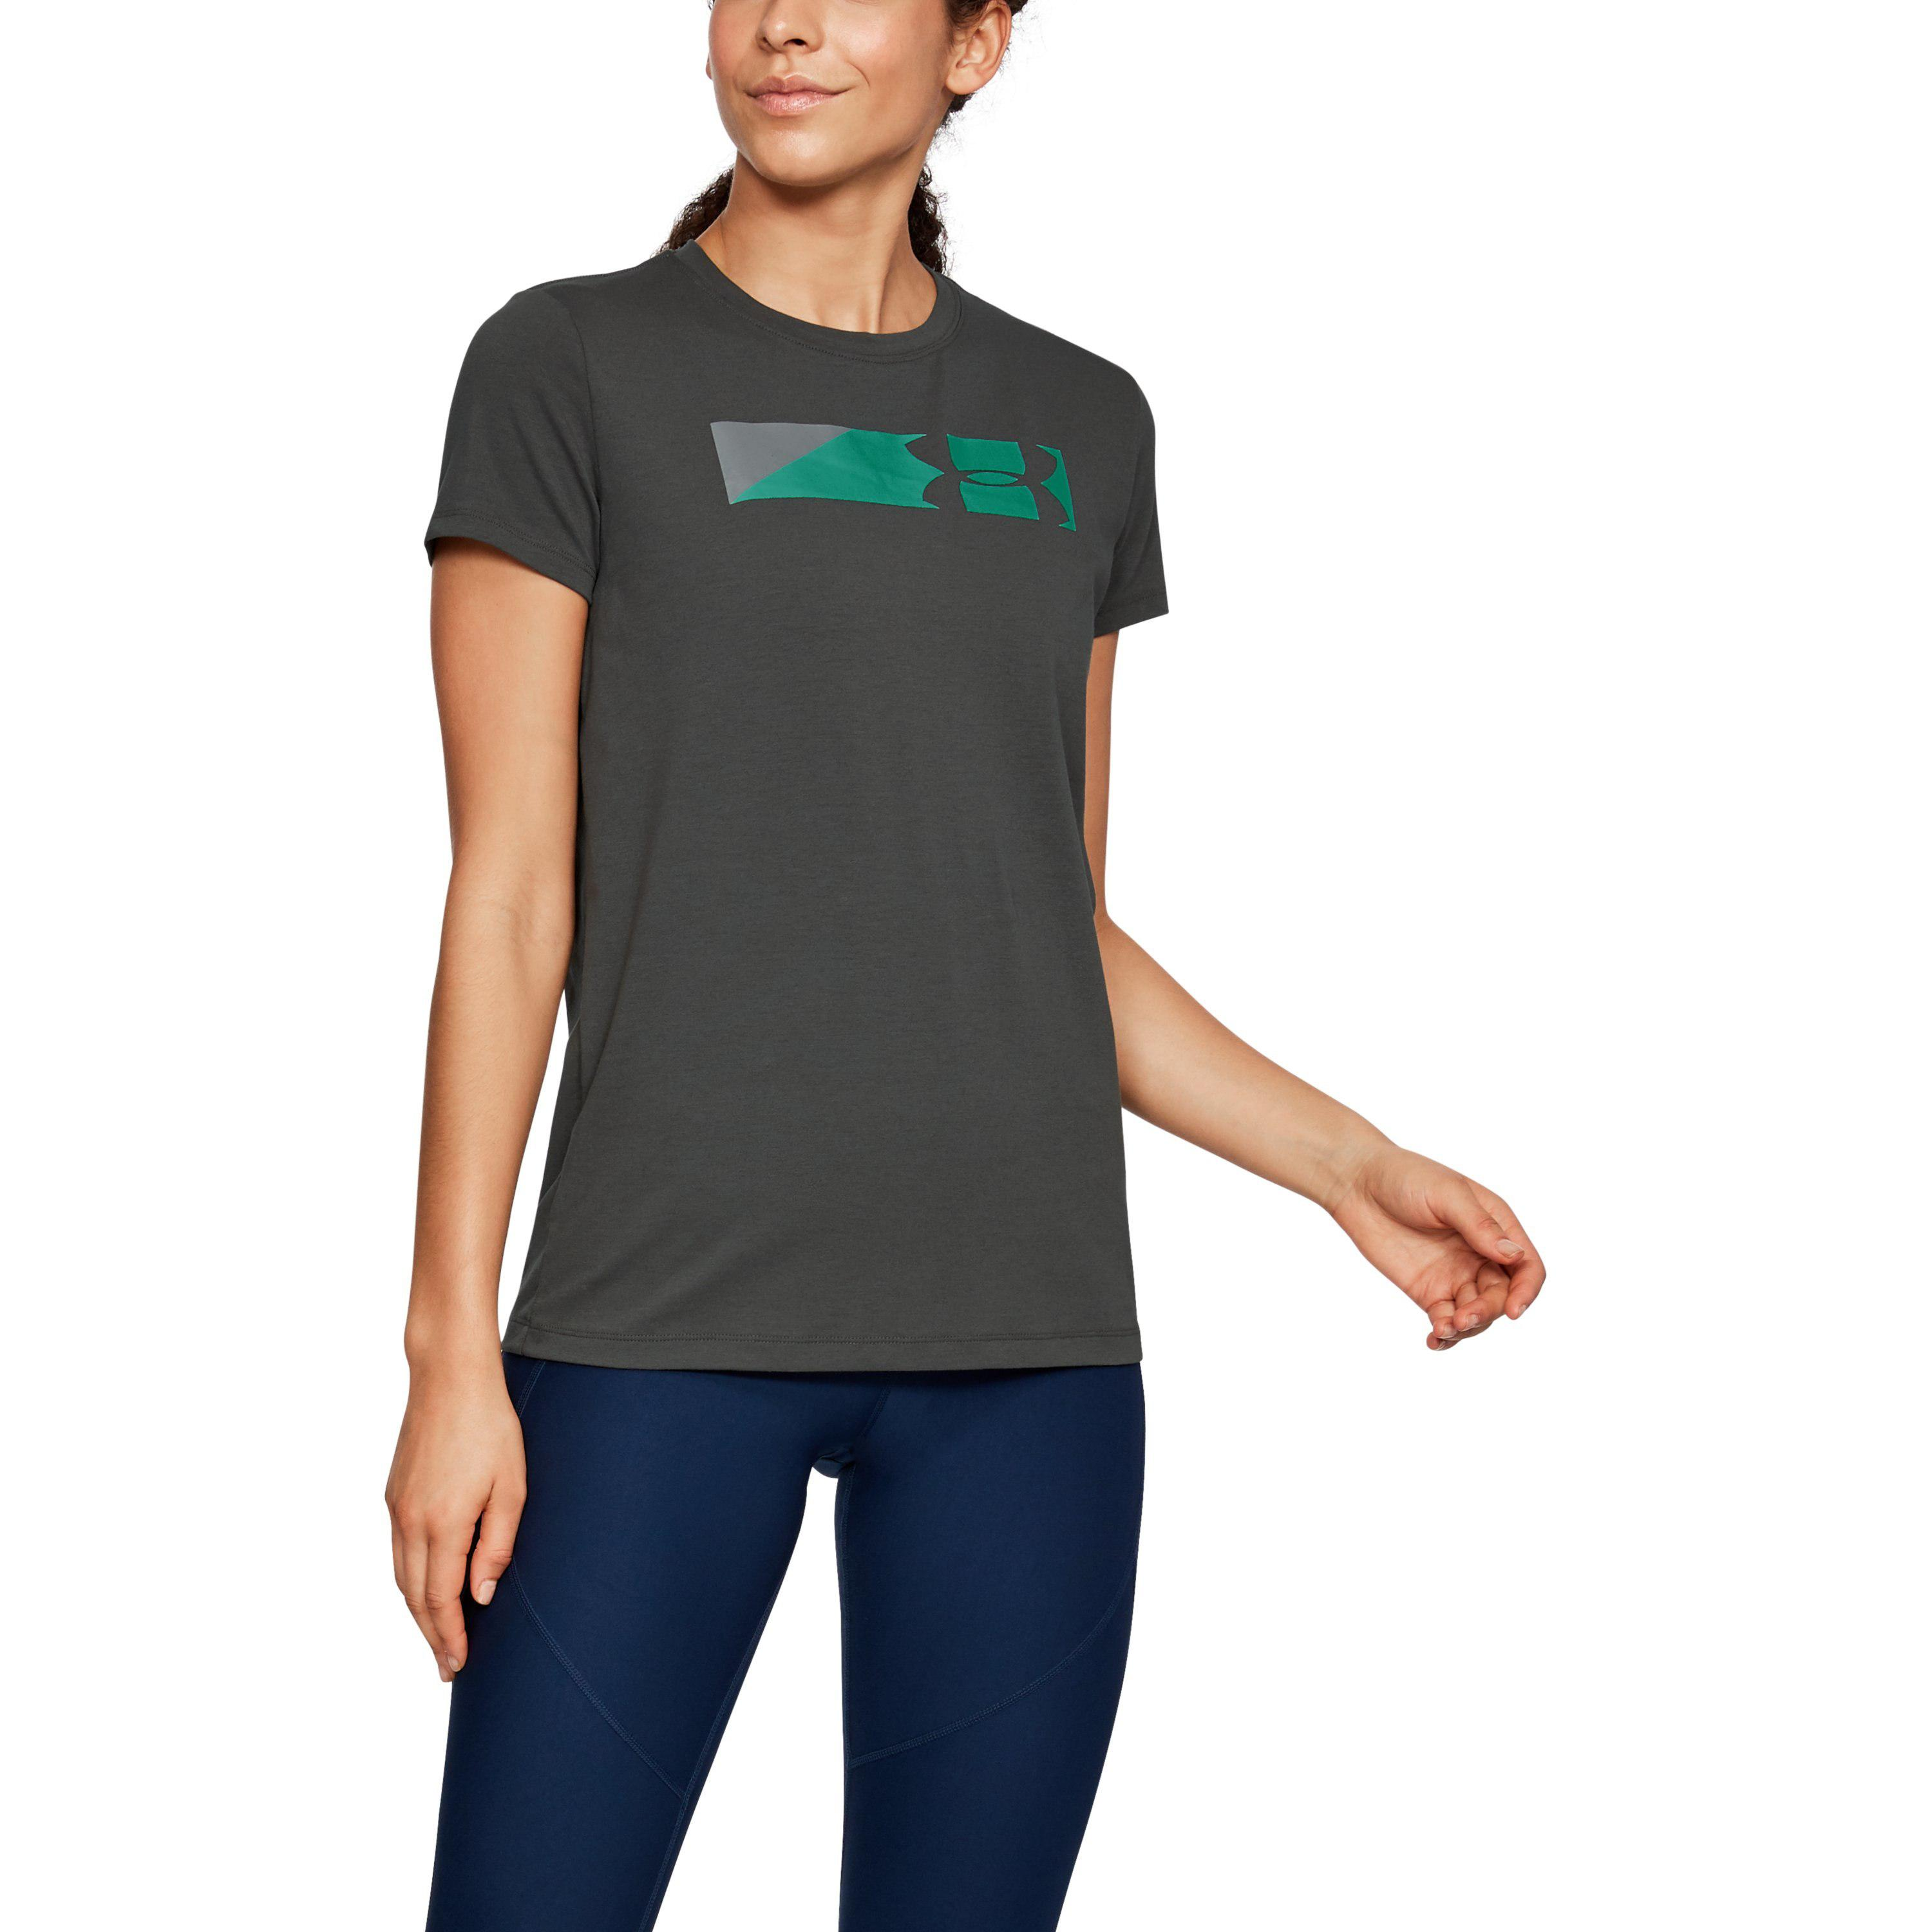 af449c8d0 Lyst - Under Armour Women's Ua Sportstyle Branded Graphic T-shirt in ...